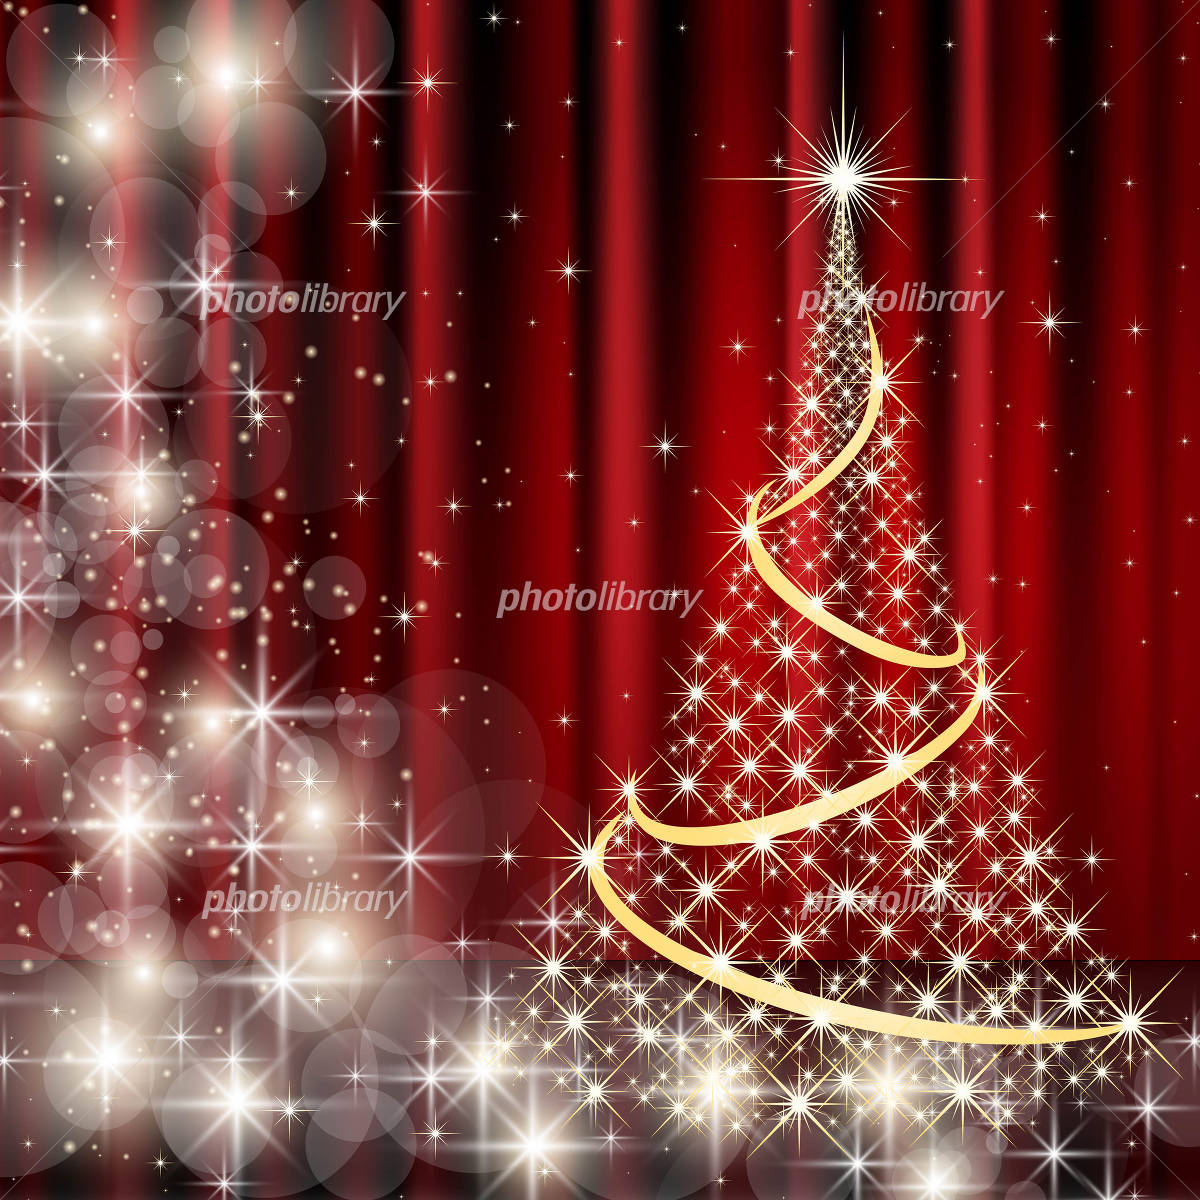 Glowing Christmas tree and red curtain background イラスト素材